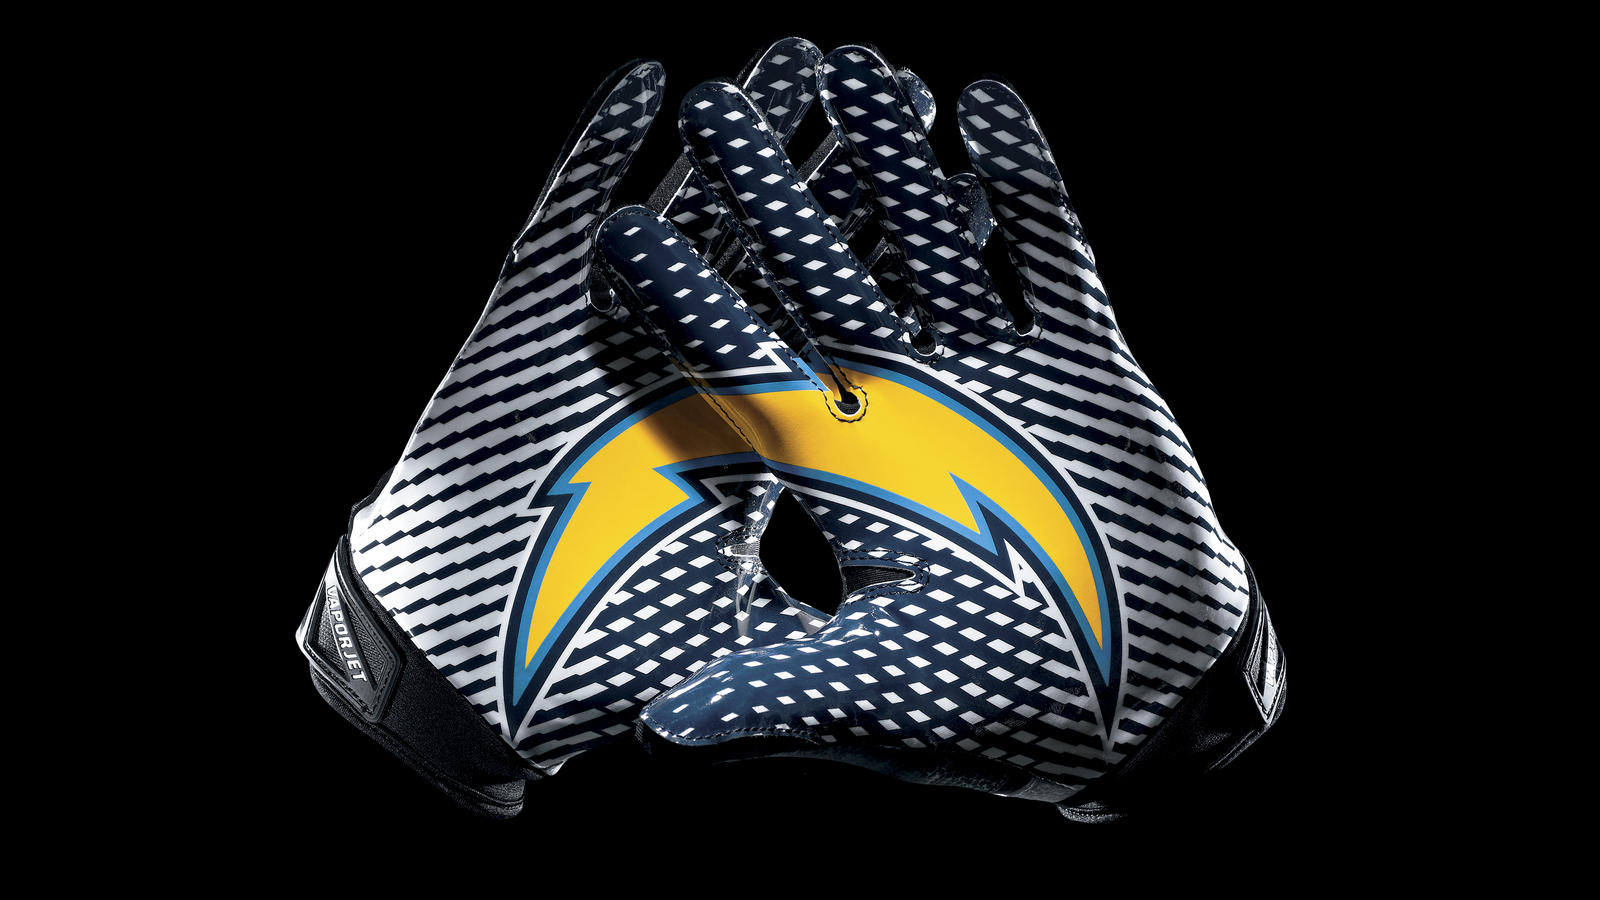 San Diego Chargers 2012 Nike Football Uniform Nike News